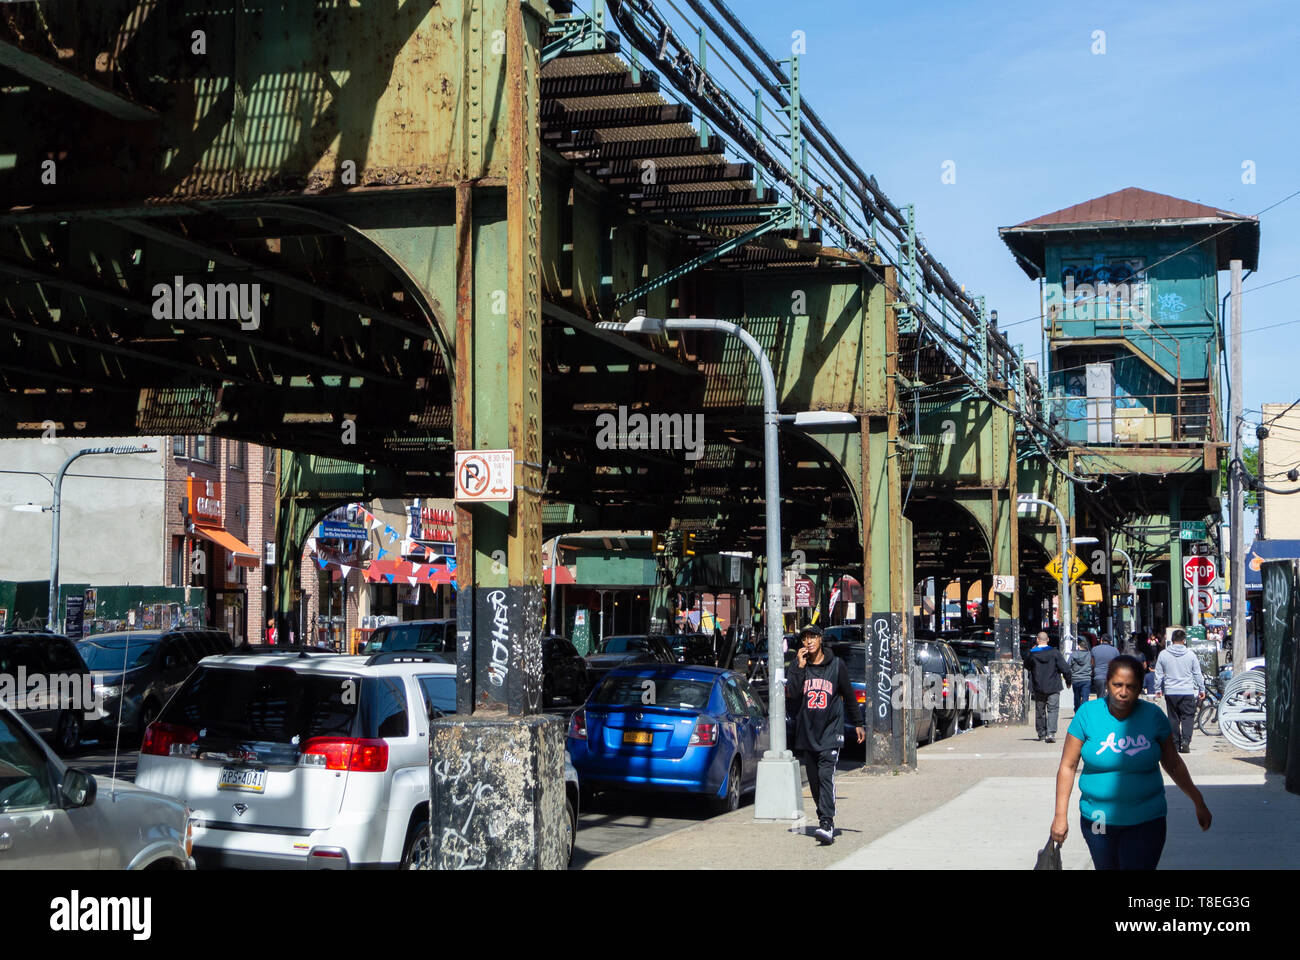 103rd Street Corona Plaza Subway Station, Queens, New York, united states of america, usa Stock Photo